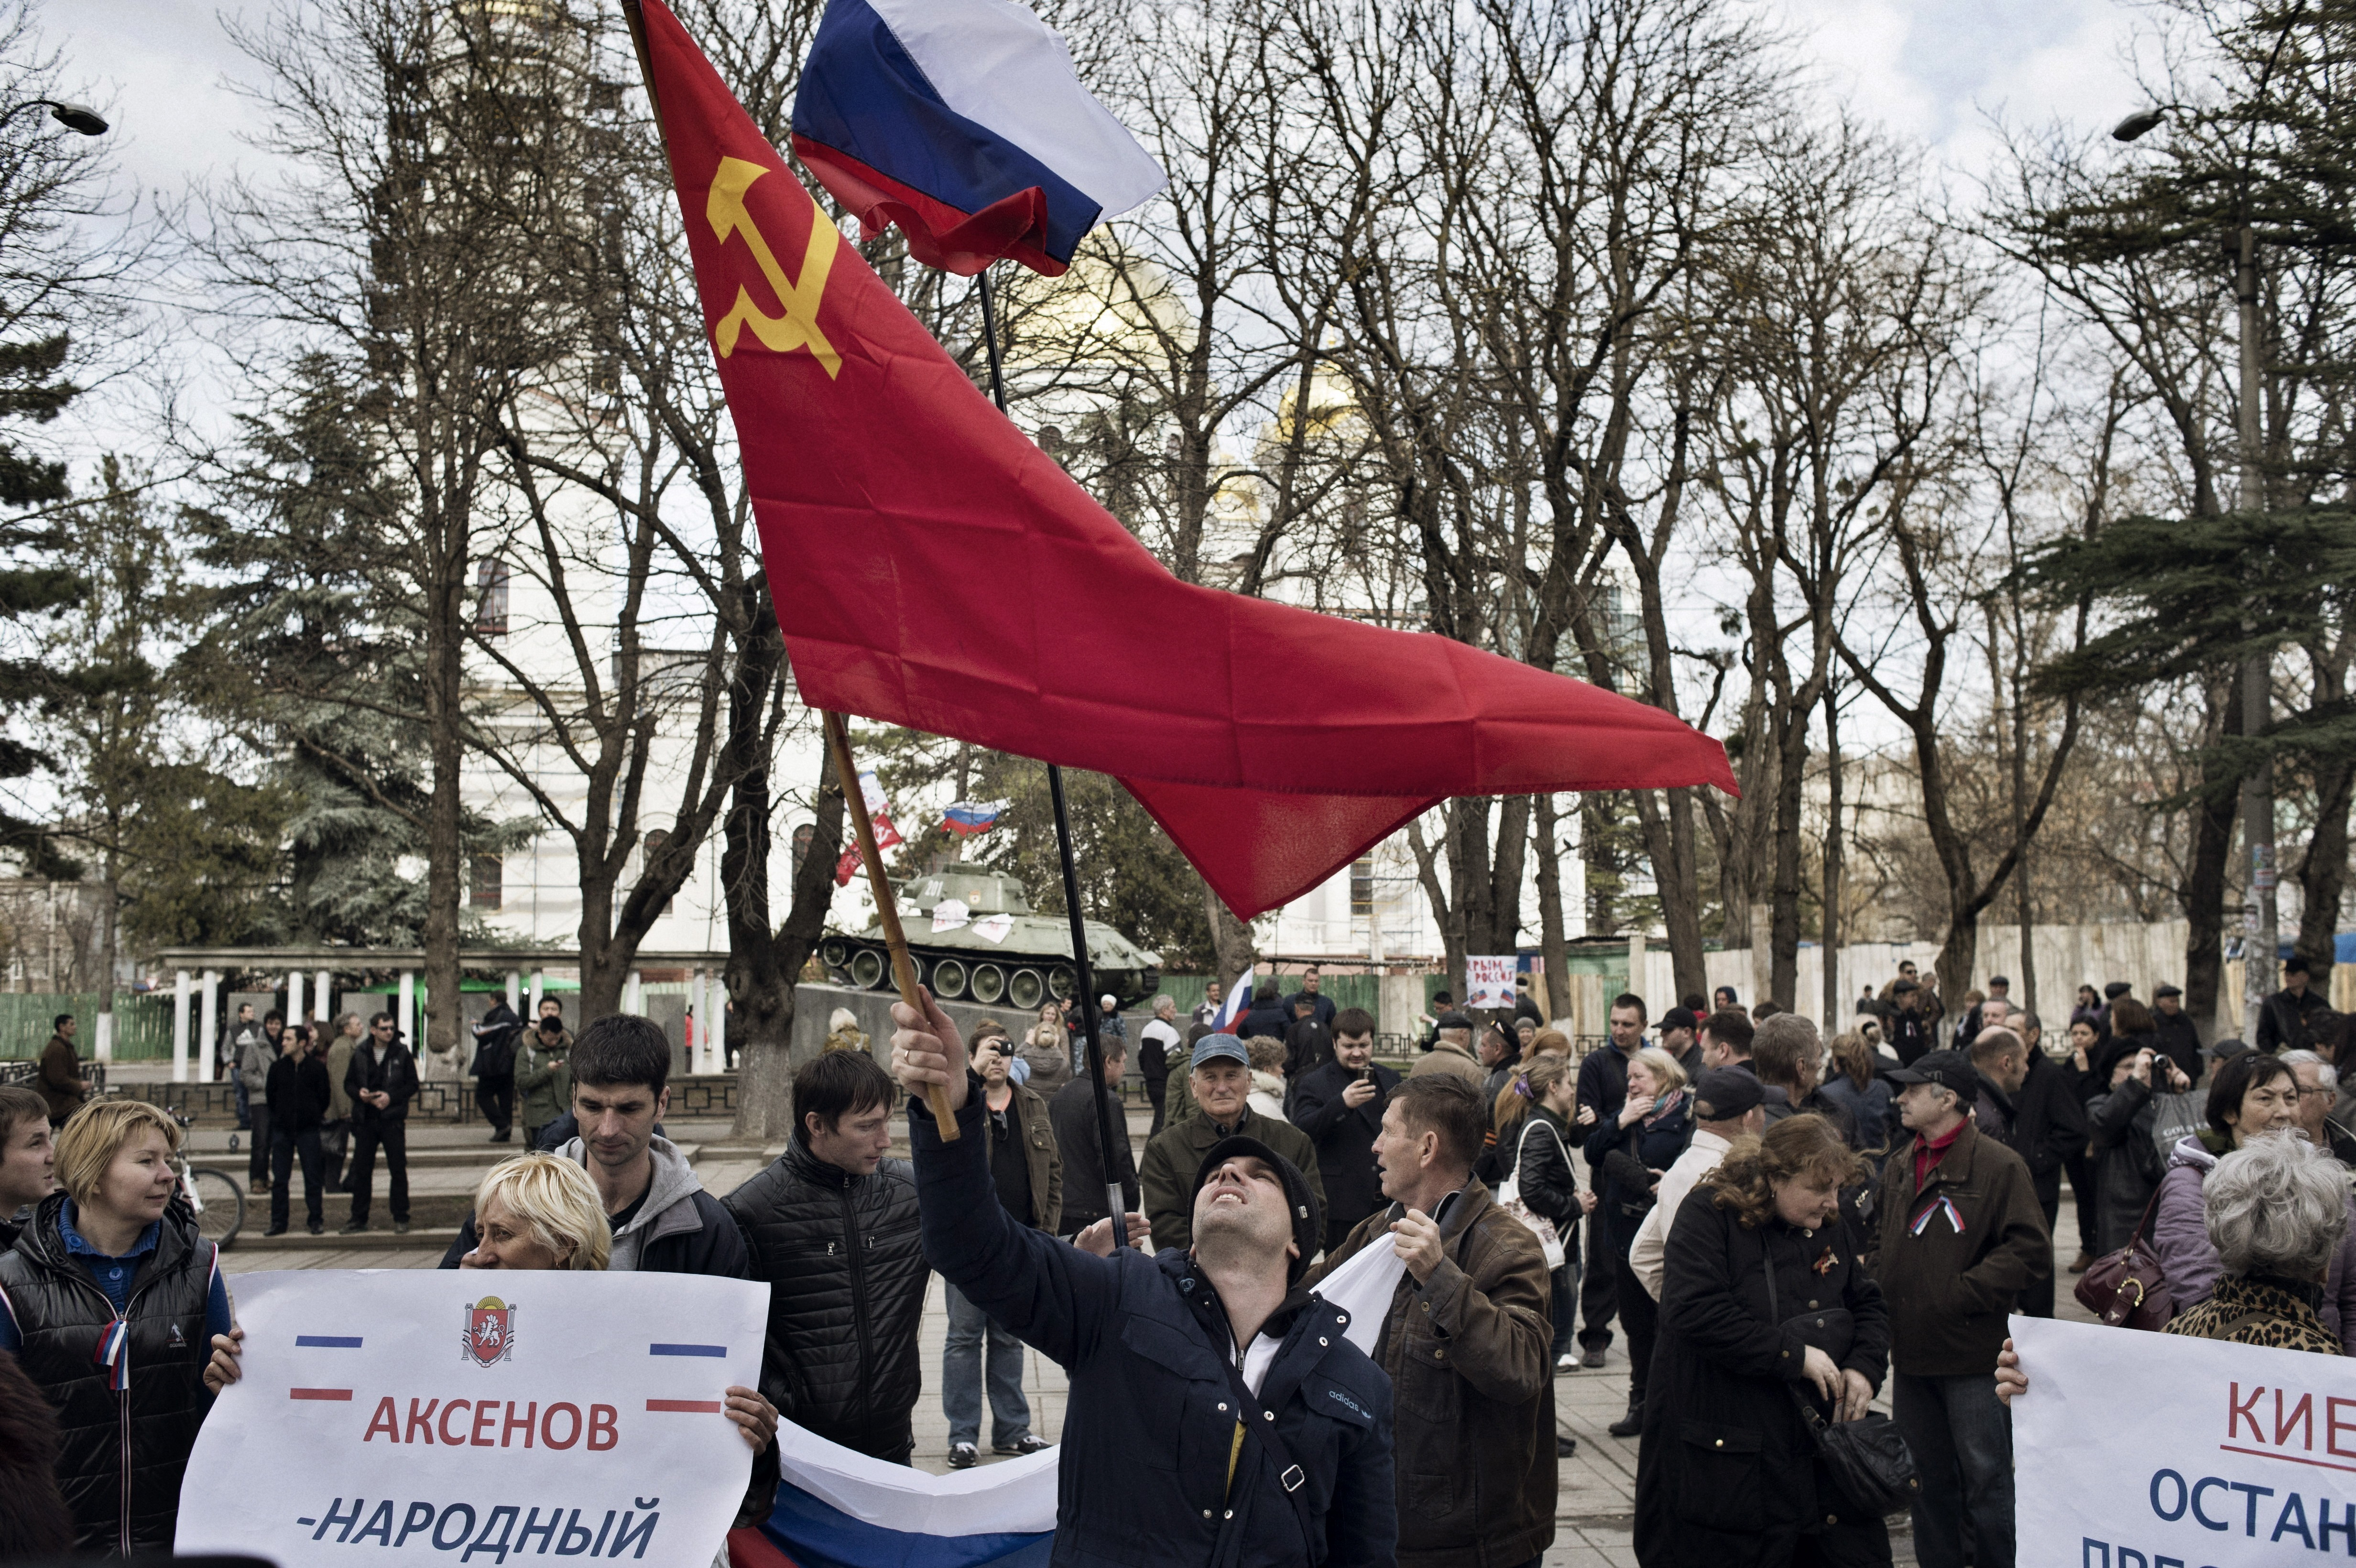 Pro-Russian demonstrators in Simferopol, Ukraine March 6 2014.